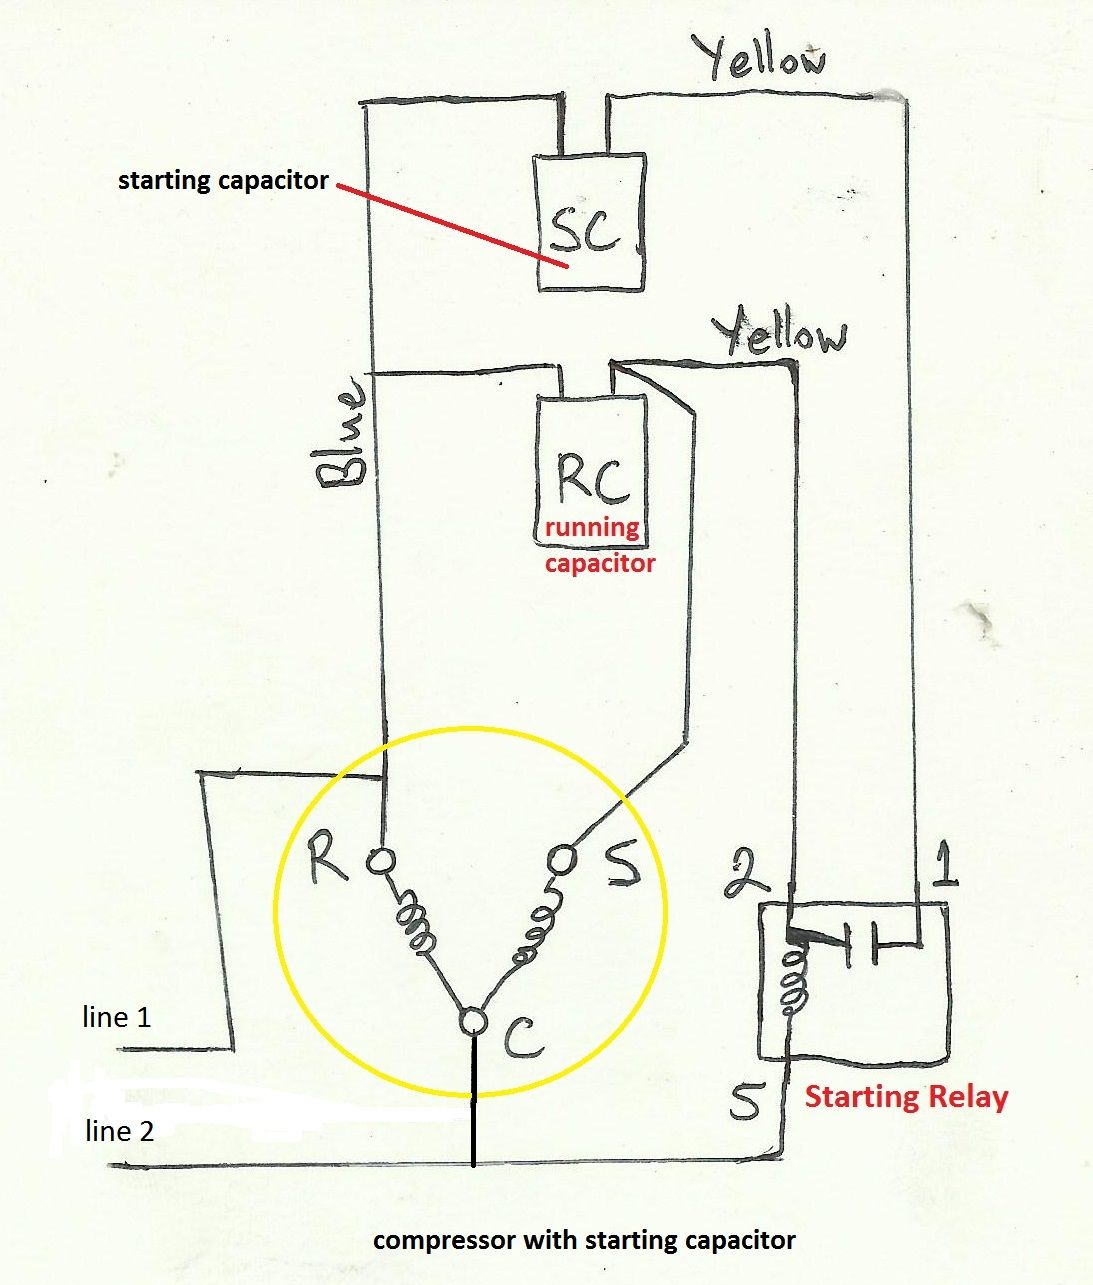 Air Compressor Capacitor Wiring Diagram Before you call a AC repair on friendship bracelet diagrams, sincgars radio configurations diagrams, switch diagrams, troubleshooting diagrams, smart car diagrams, engine diagrams, gmc fuse box diagrams, internet of things diagrams, snatch block diagrams, battery diagrams, electronic circuit diagrams, lighting diagrams, honda motorcycle repair diagrams, motor diagrams, transformer diagrams, electrical diagrams, hvac diagrams, pinout diagrams, led circuit diagrams, series and parallel circuits diagrams,